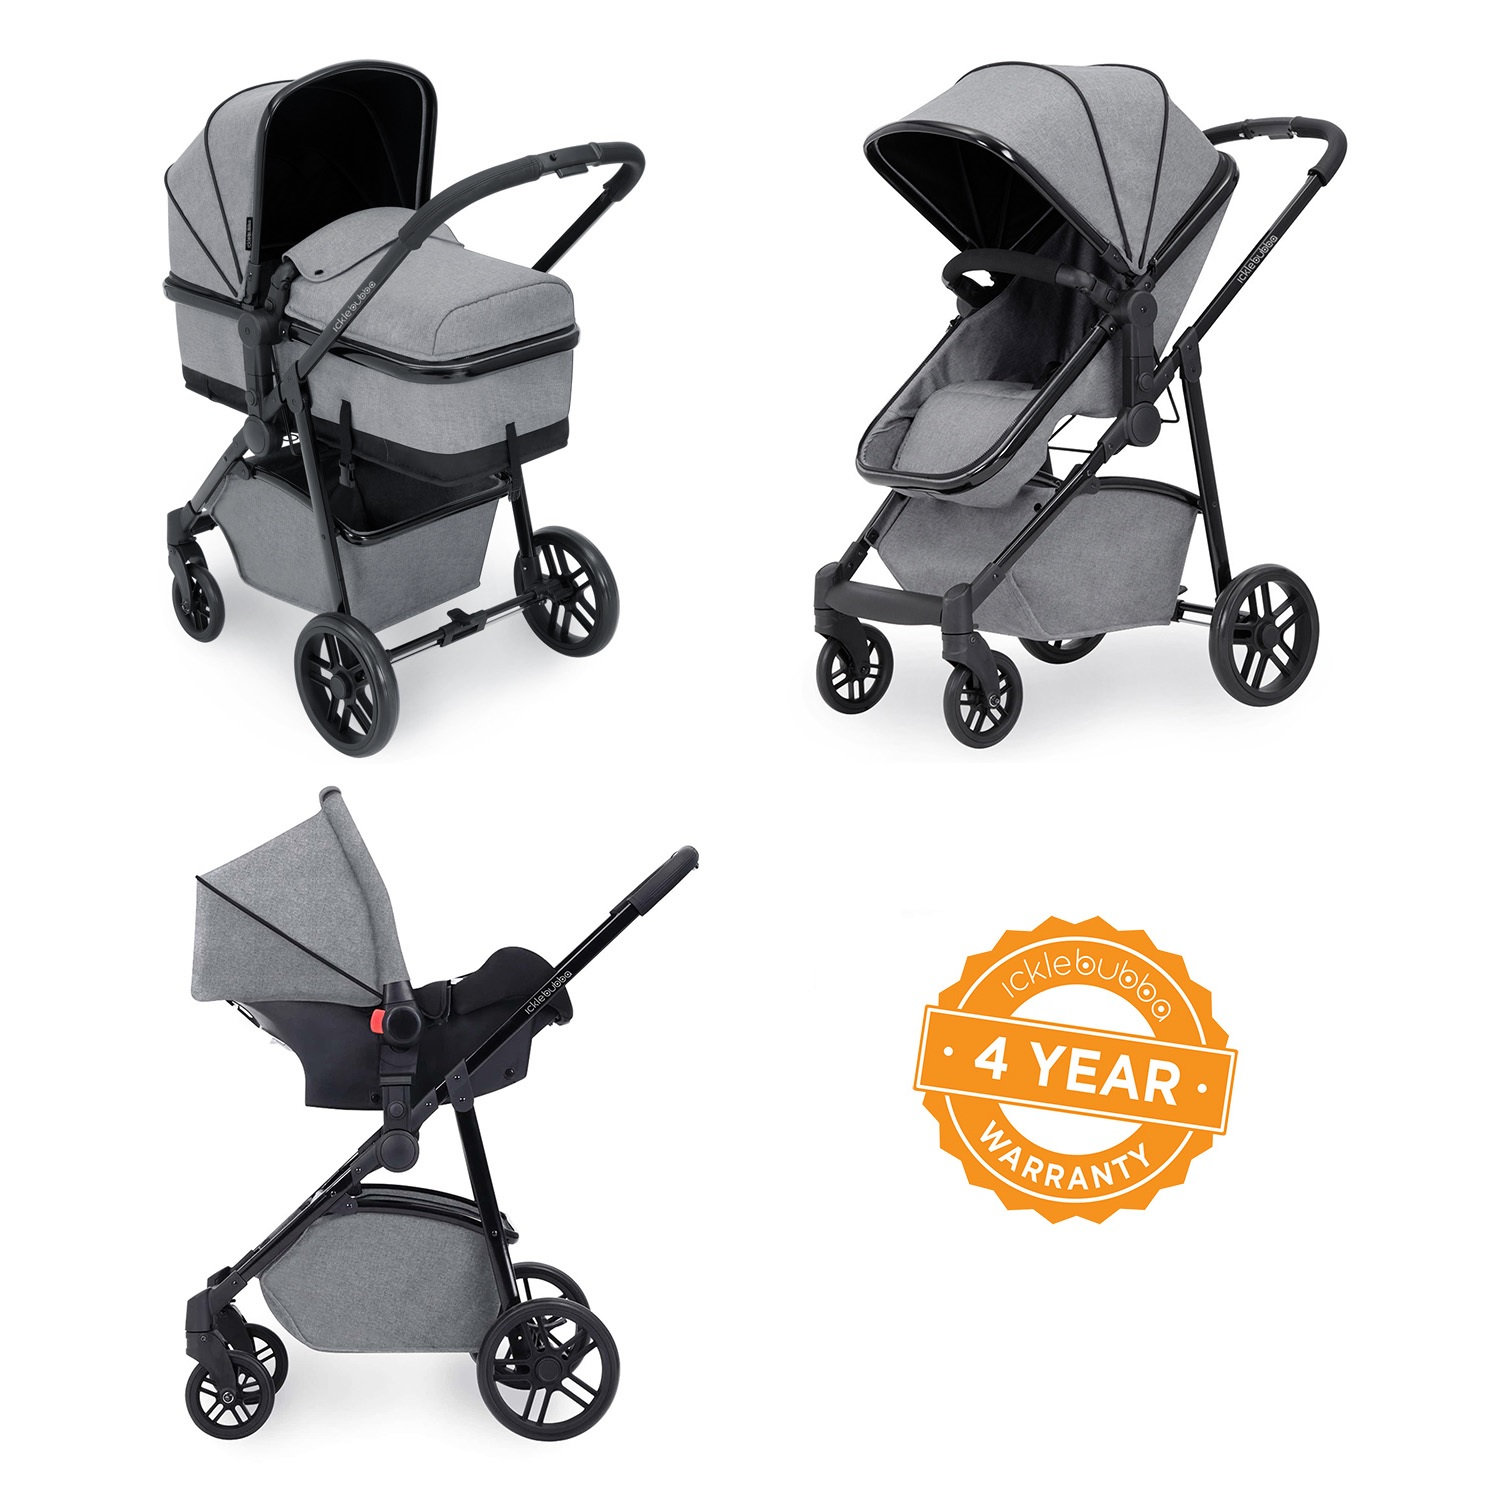 8665e23ea50c6 Ickle Bubba Moon 3-in-1 Travel System - Space Grey - Smart Kid Store